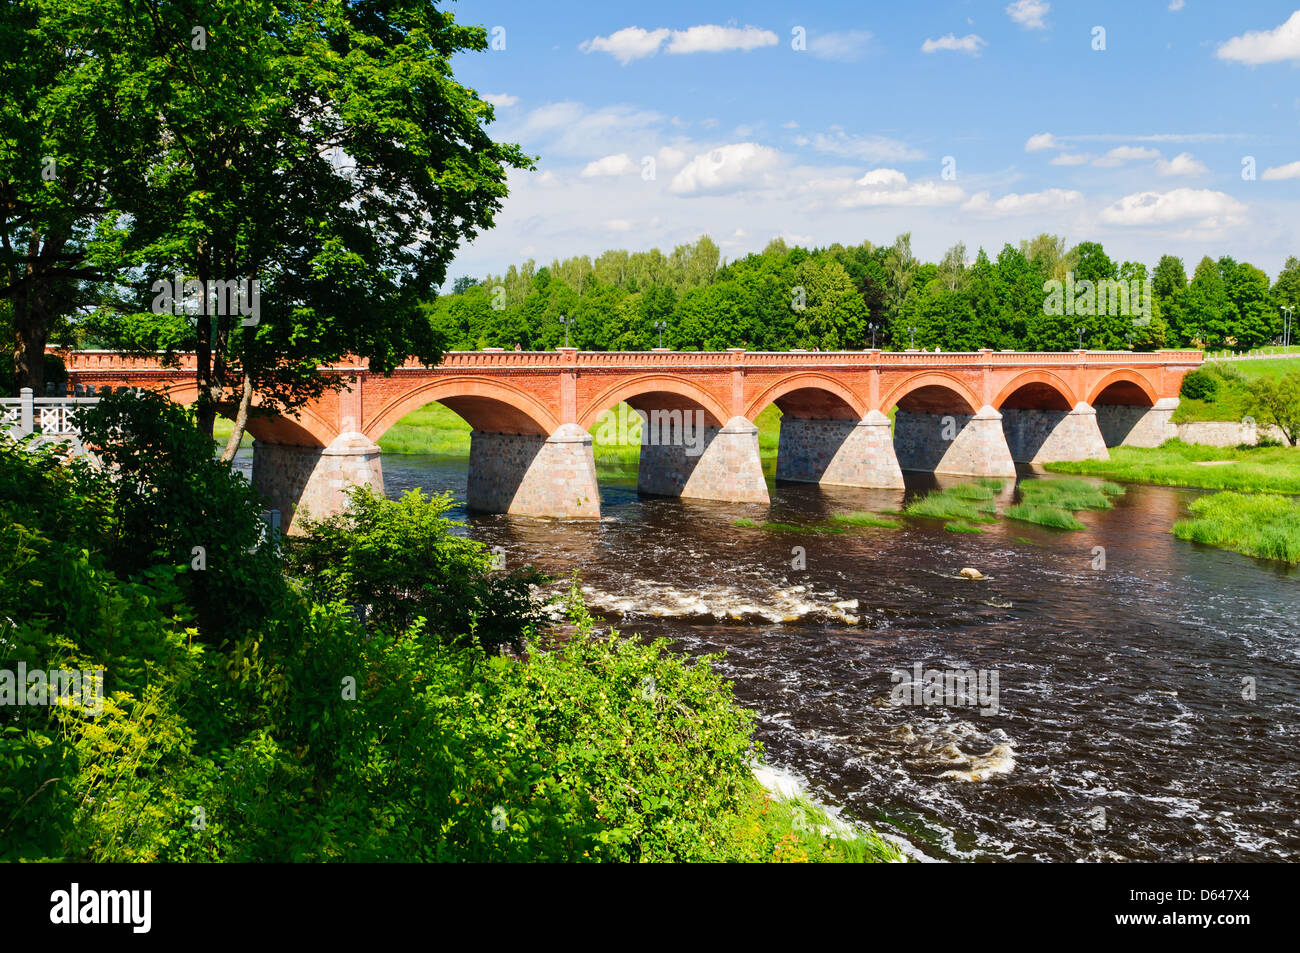 brick bridge over venta river in kuldiga, latvia - Stock Image